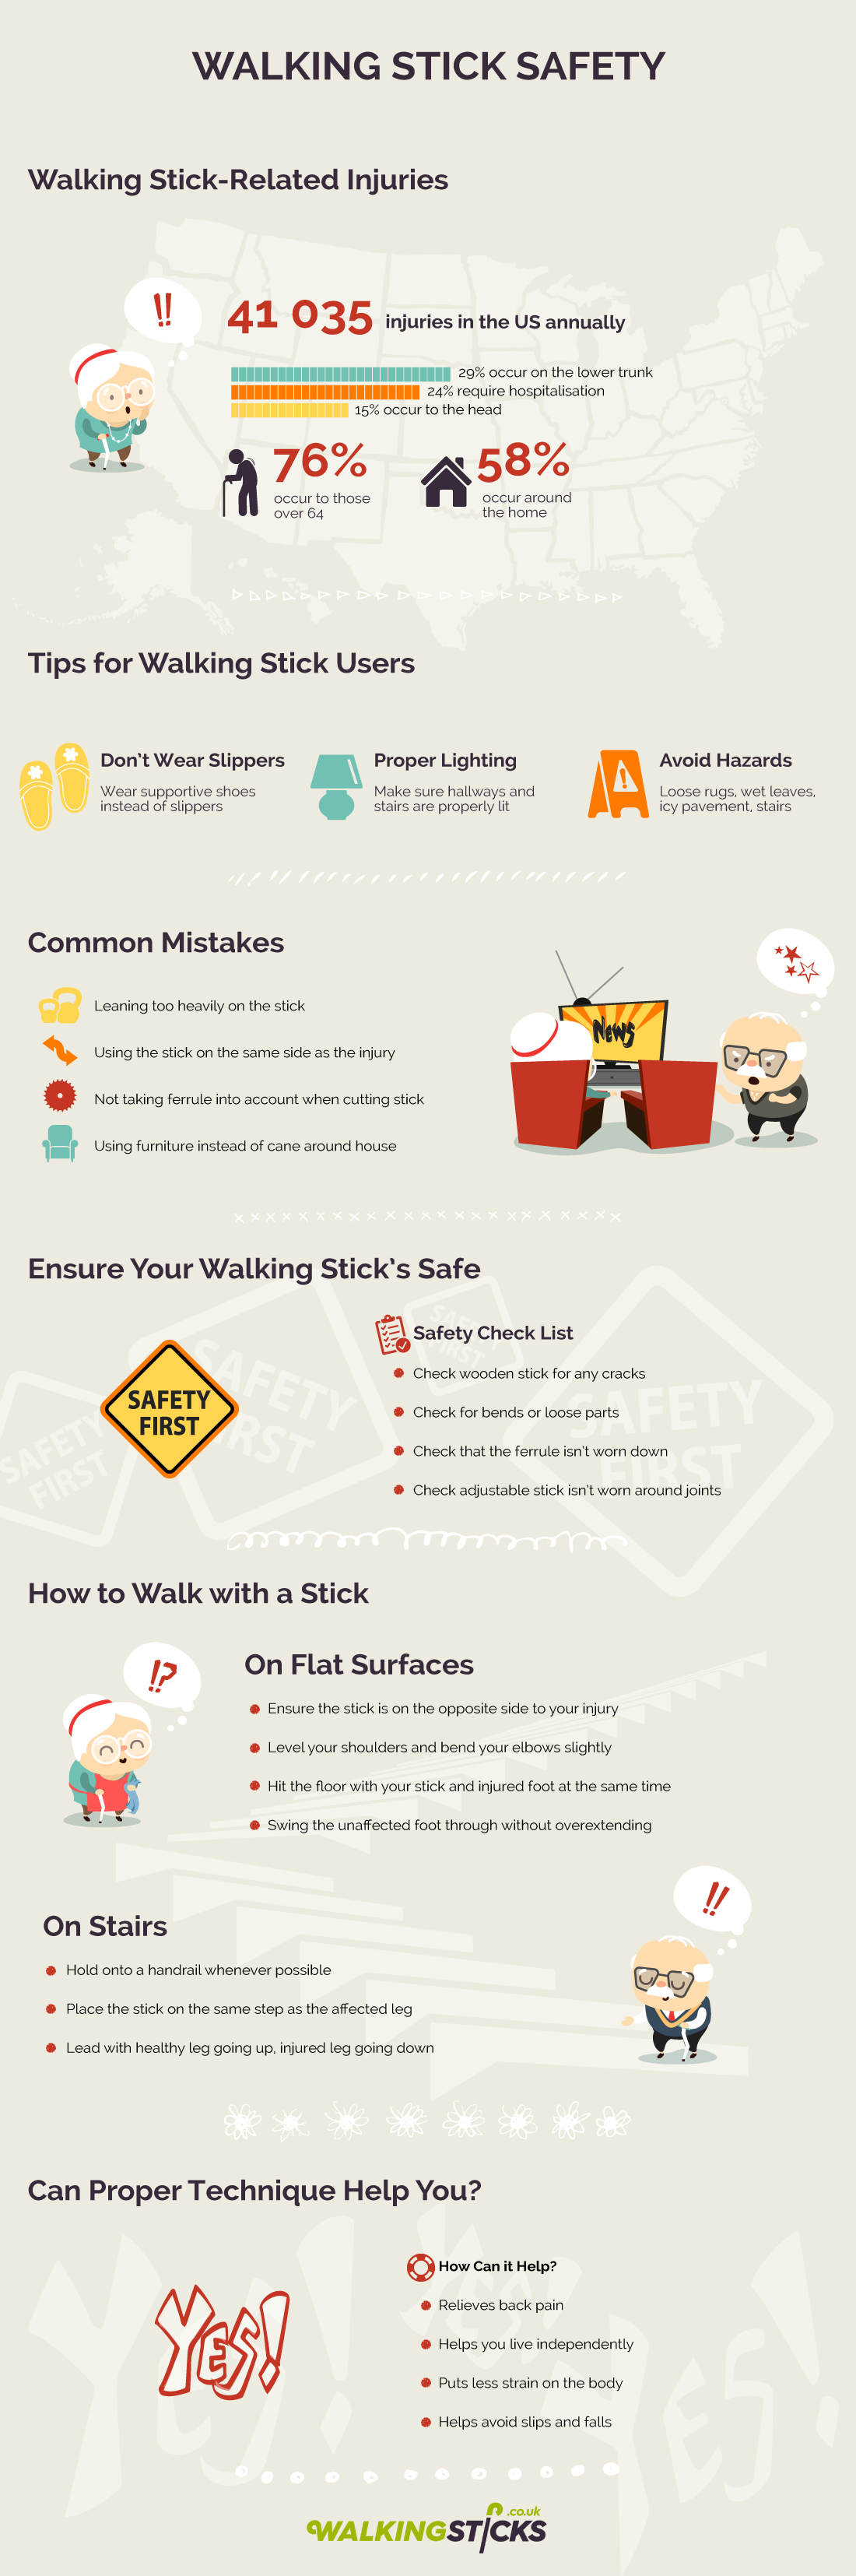 Walking Stick Safety Guide